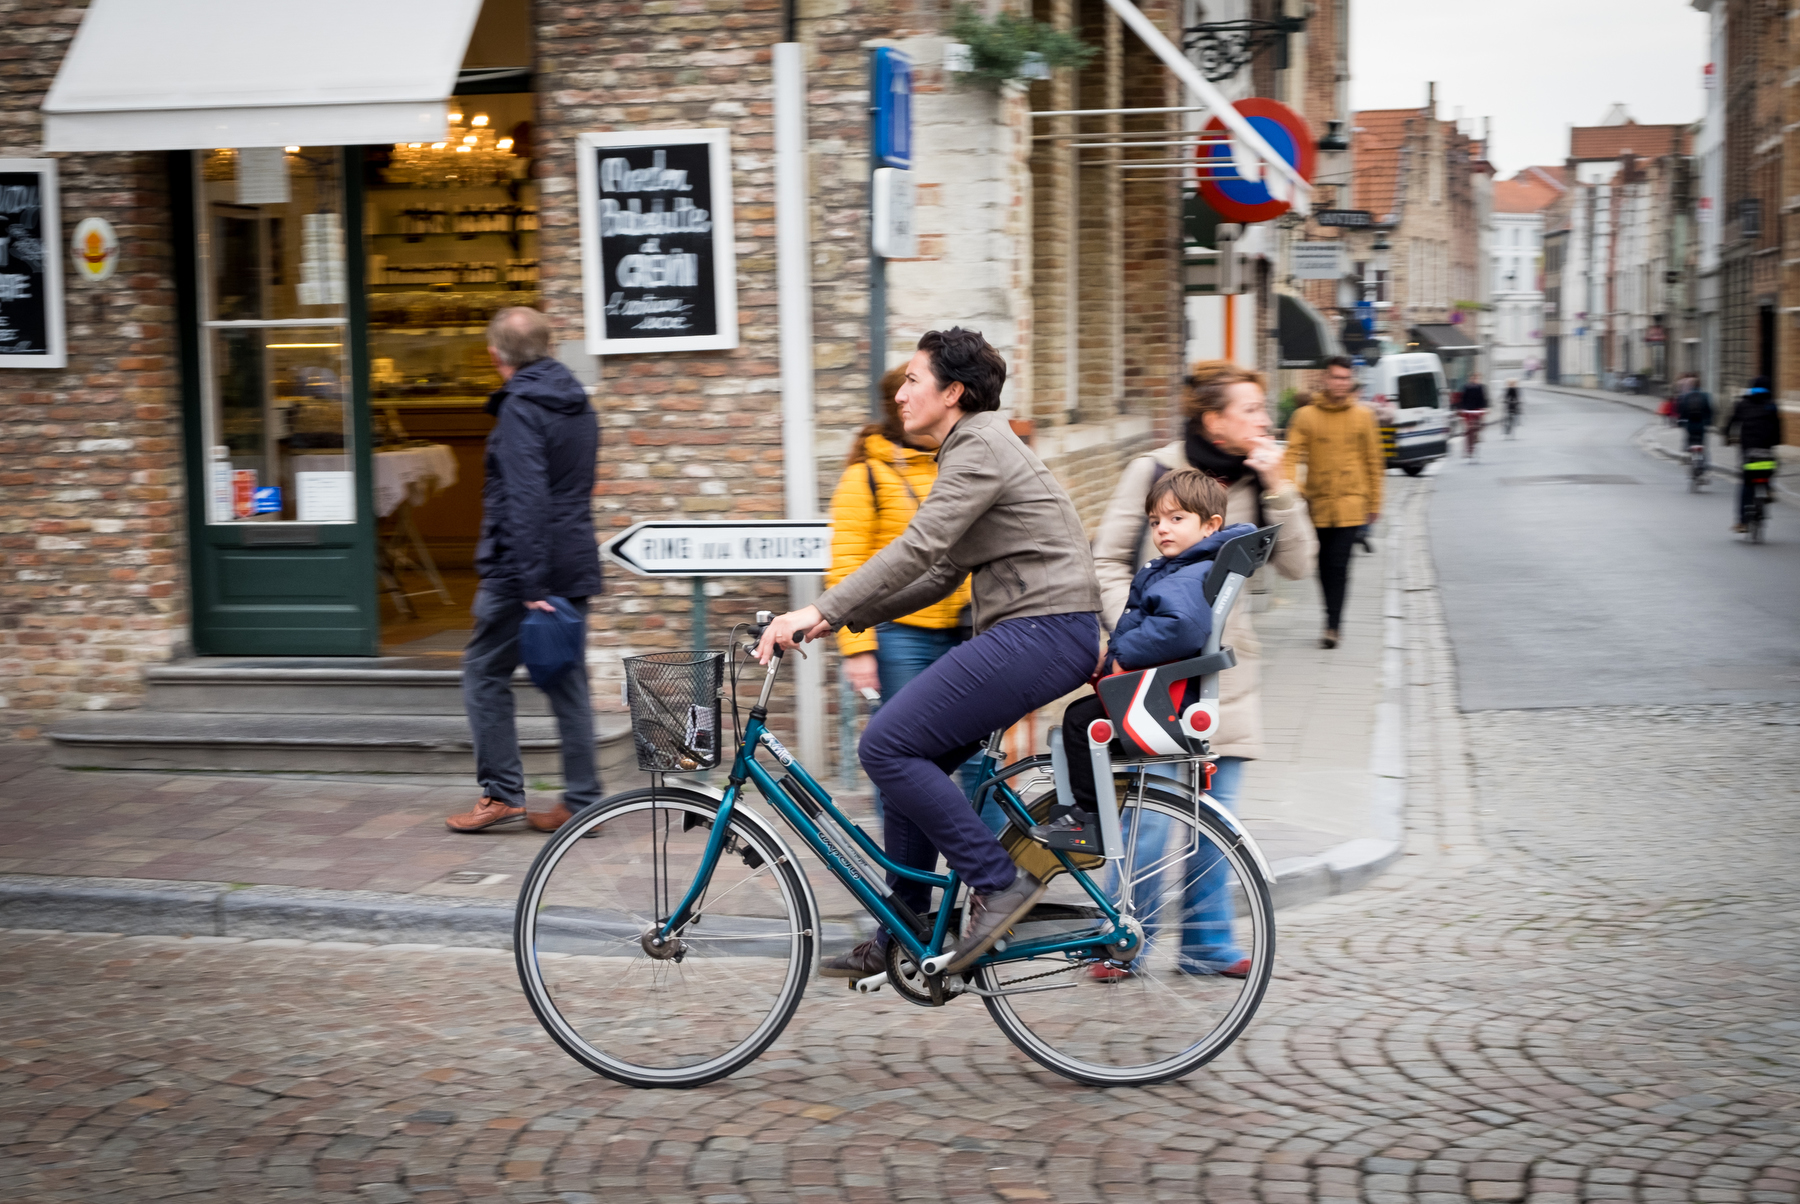 The locals were pros on their bikes in Bruges, Belgium